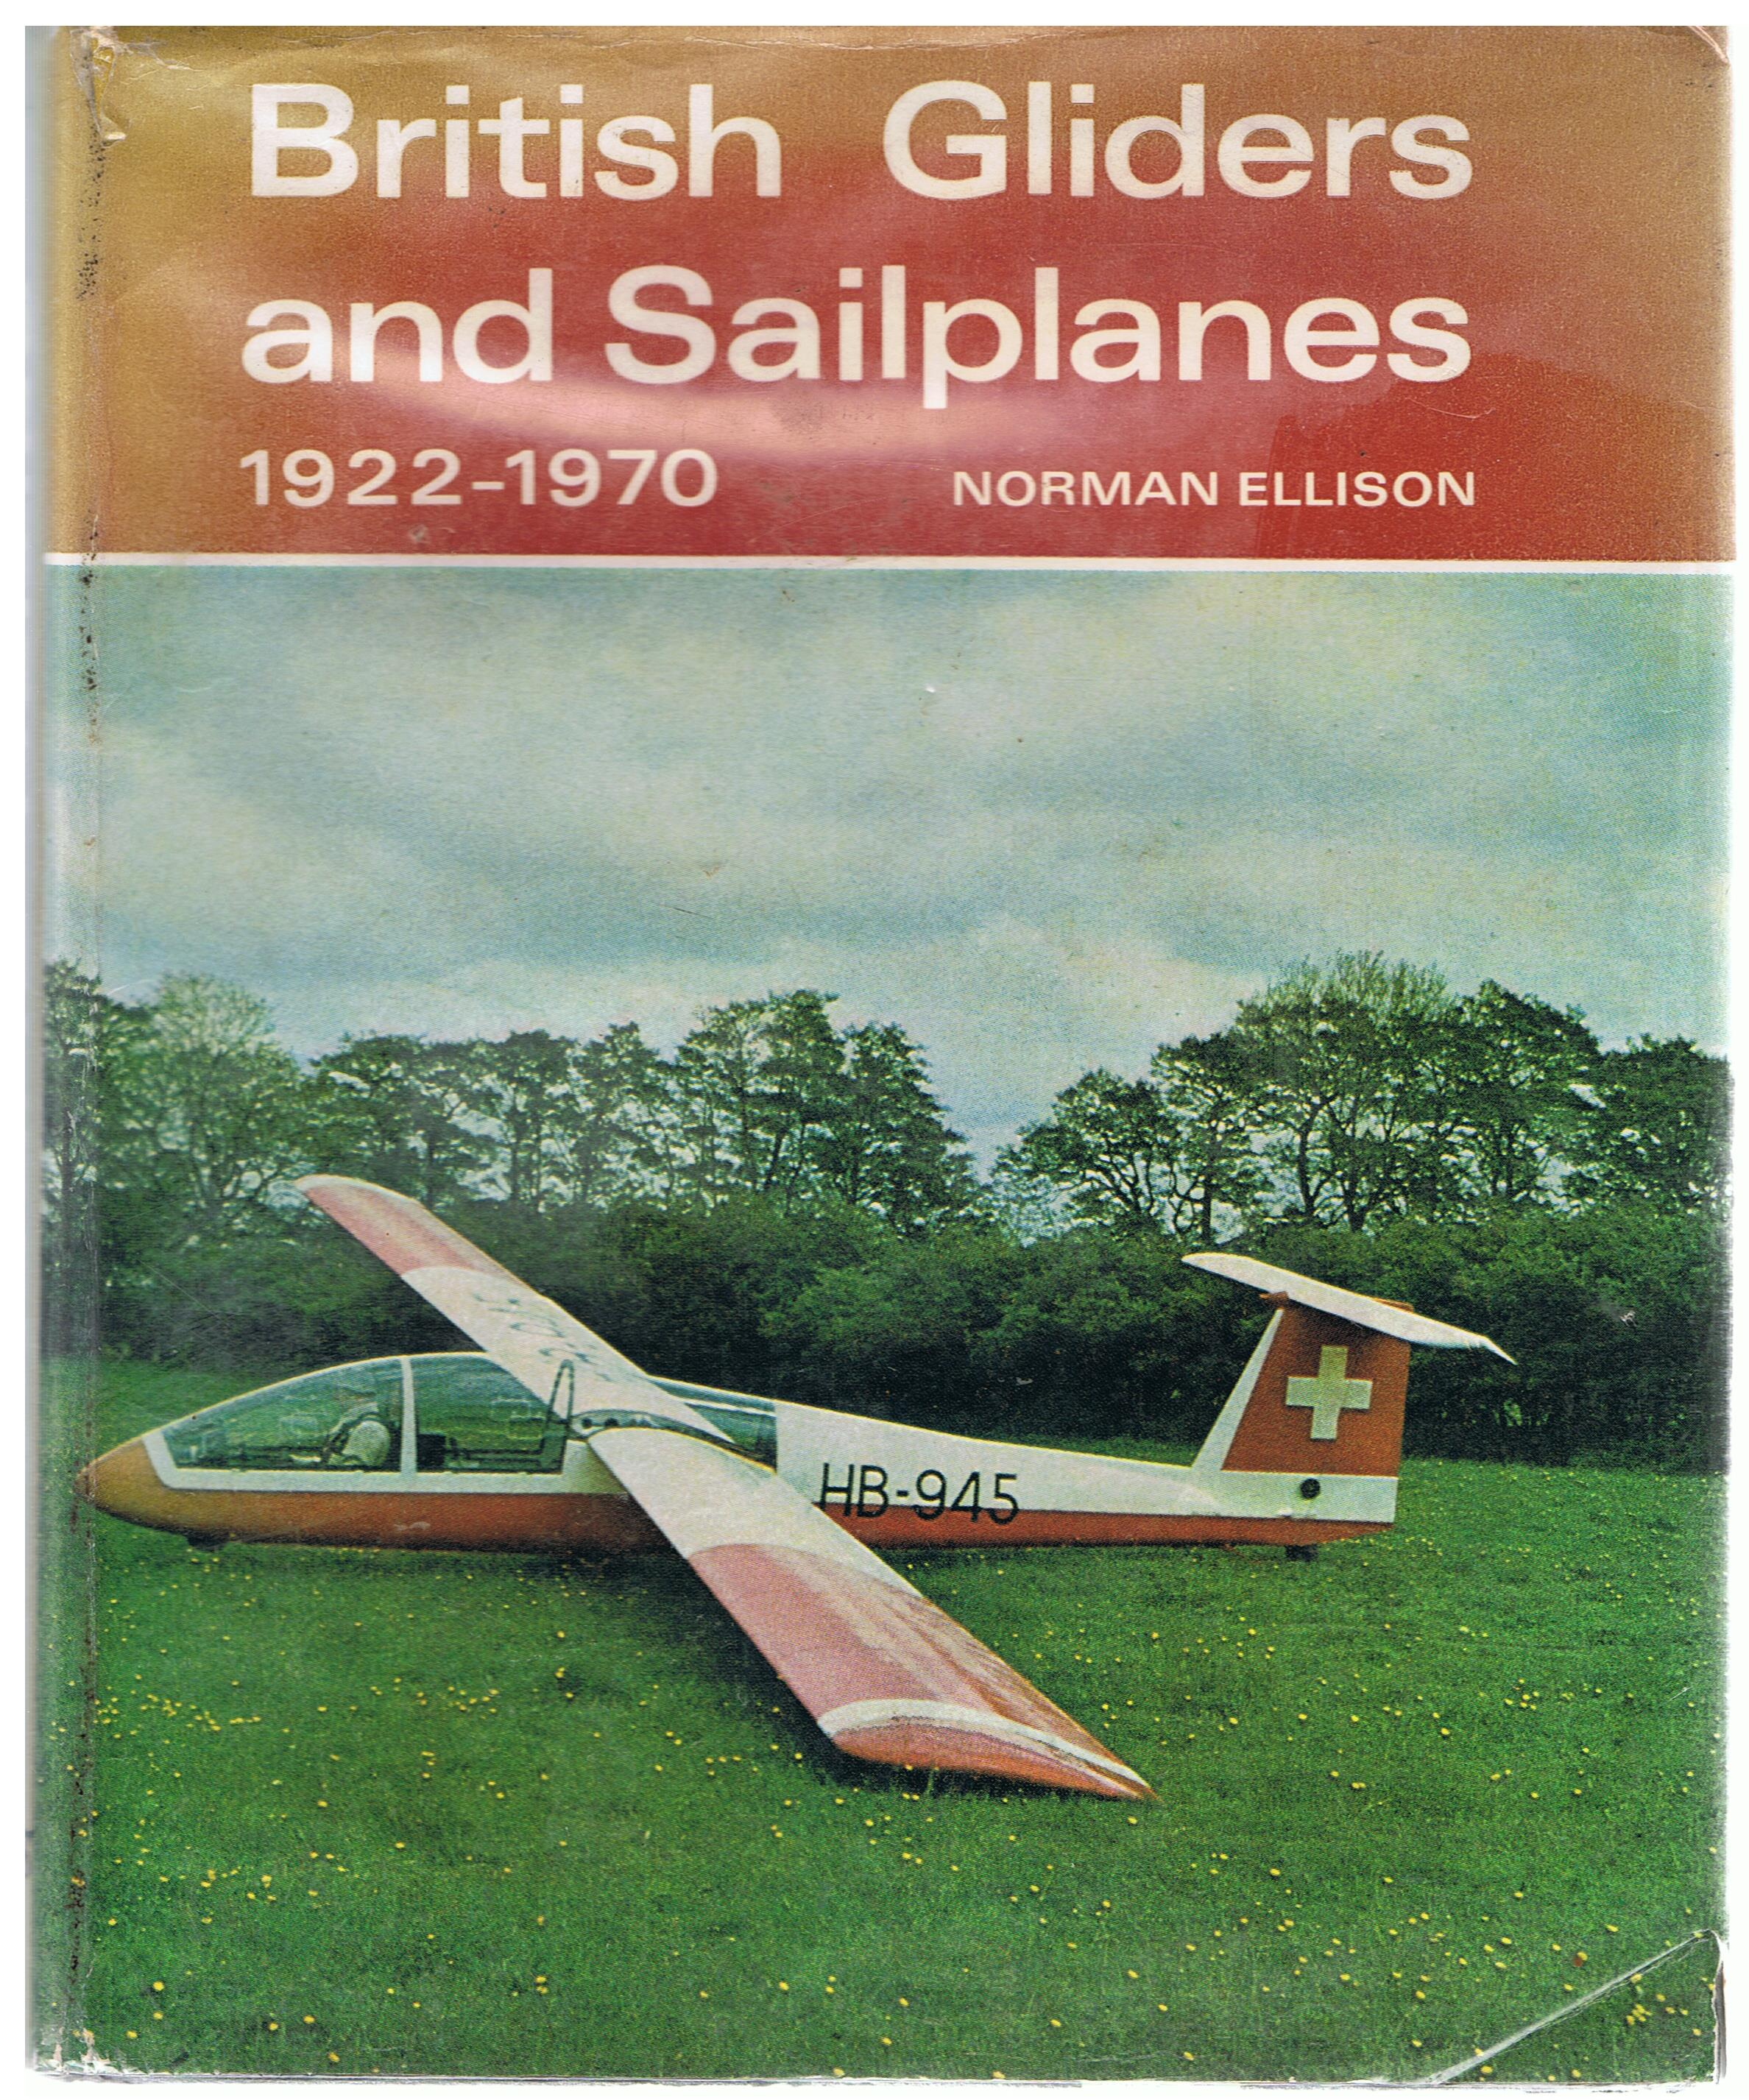 Image for British Gliders and Sailplanes, 1922-1970.